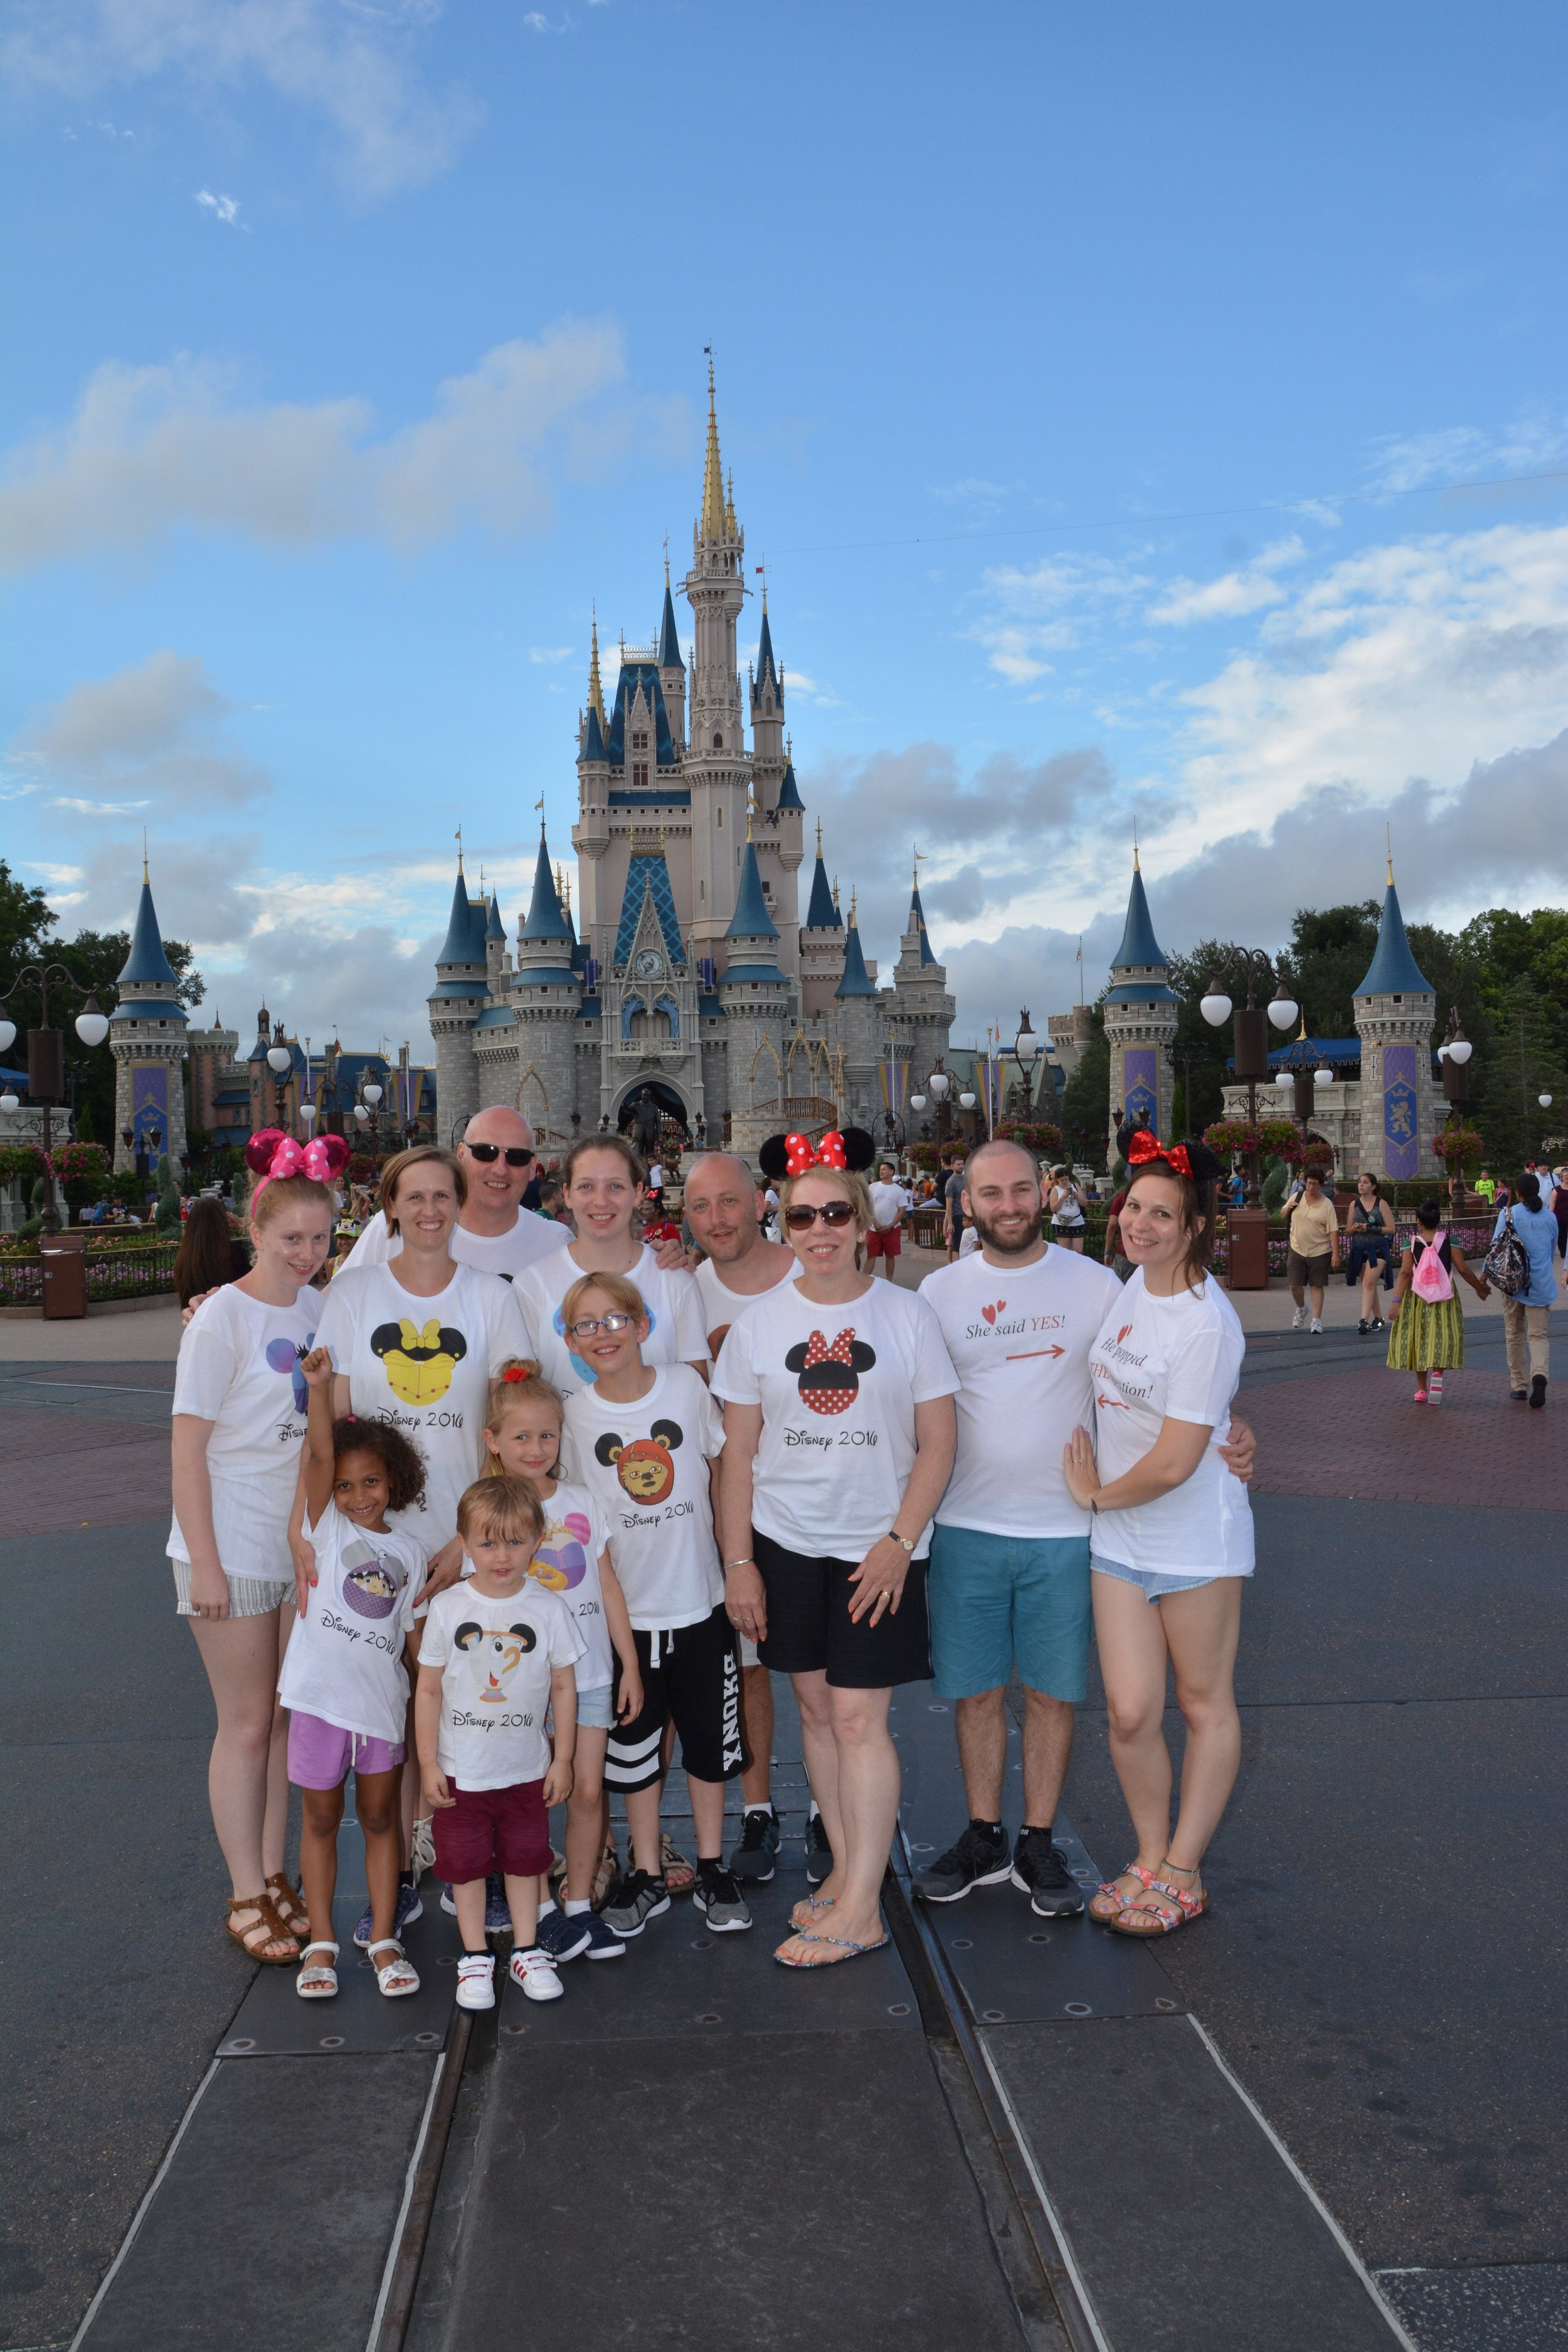 Lewis, Jess and Jess' family, on their magical trip to Disneyland Florida.